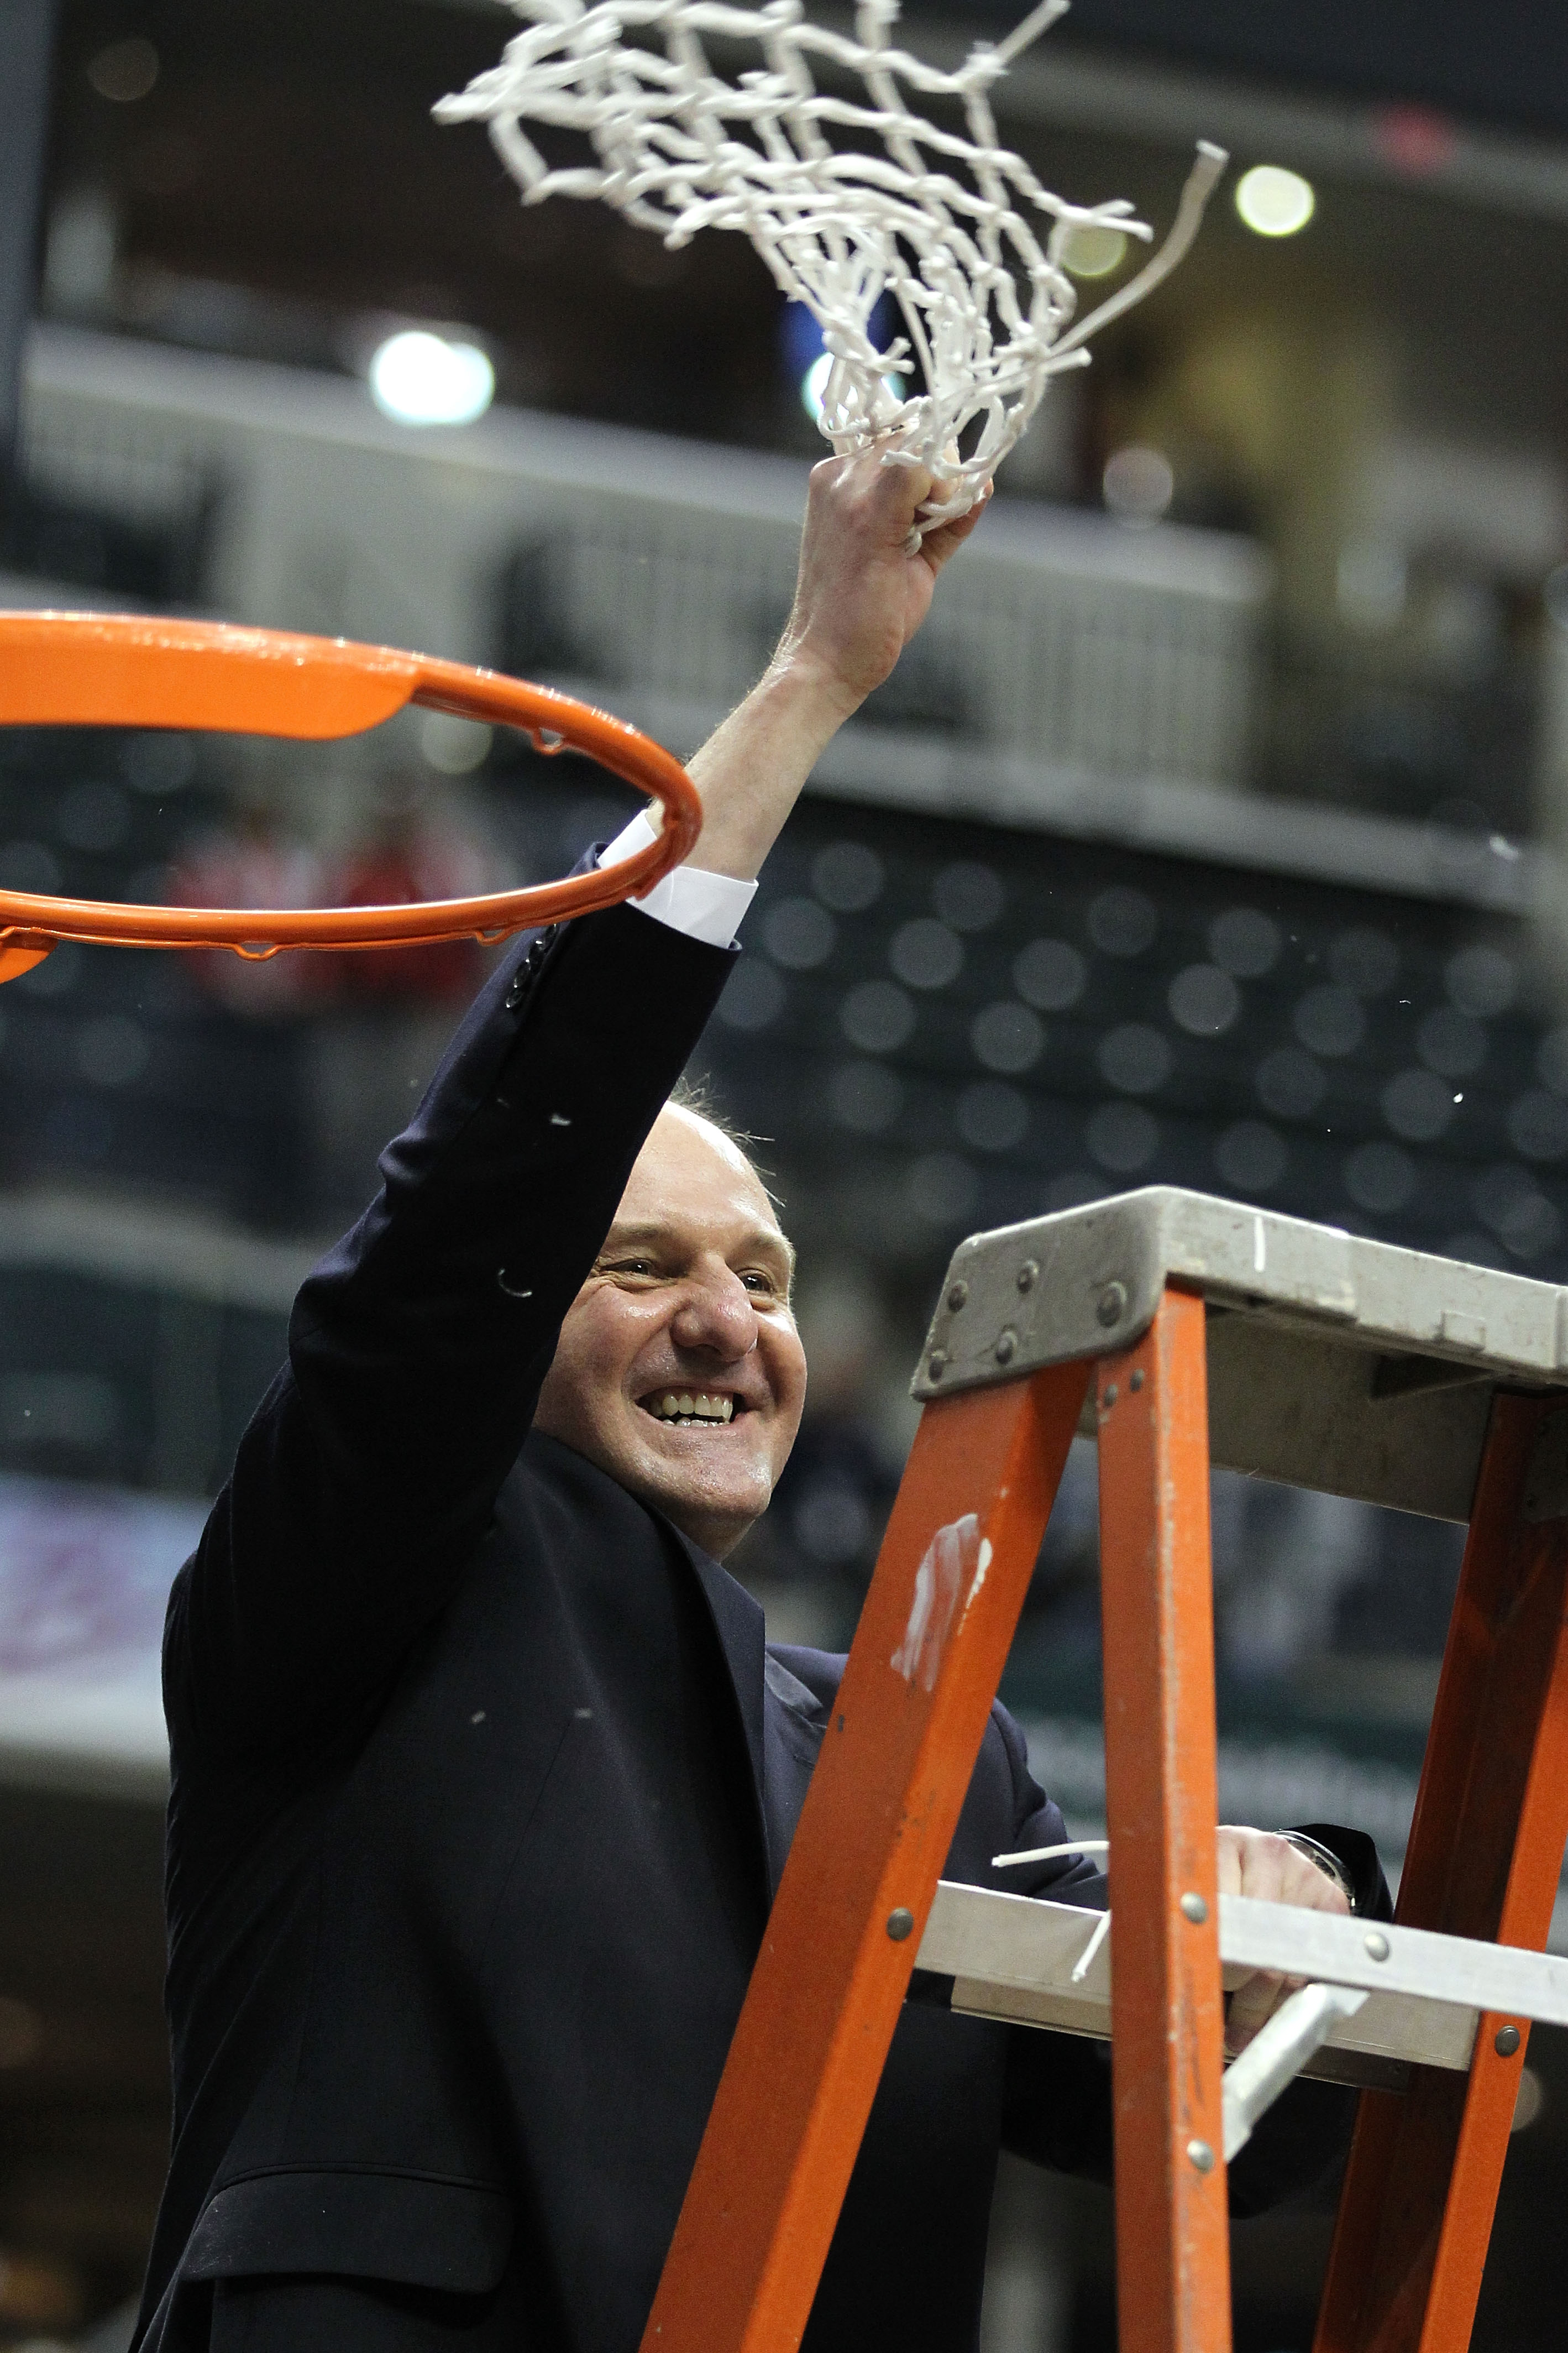 INDIANAPOLIS, IN - MARCH 13:  Head coach Thad Matta of the Ohio State Buckeyes celebrates after he cut down the net following their 71-60 win against the Penn State Nittany Lions during the championship game of the 2011 Big Ten Men's Basketball Tournament